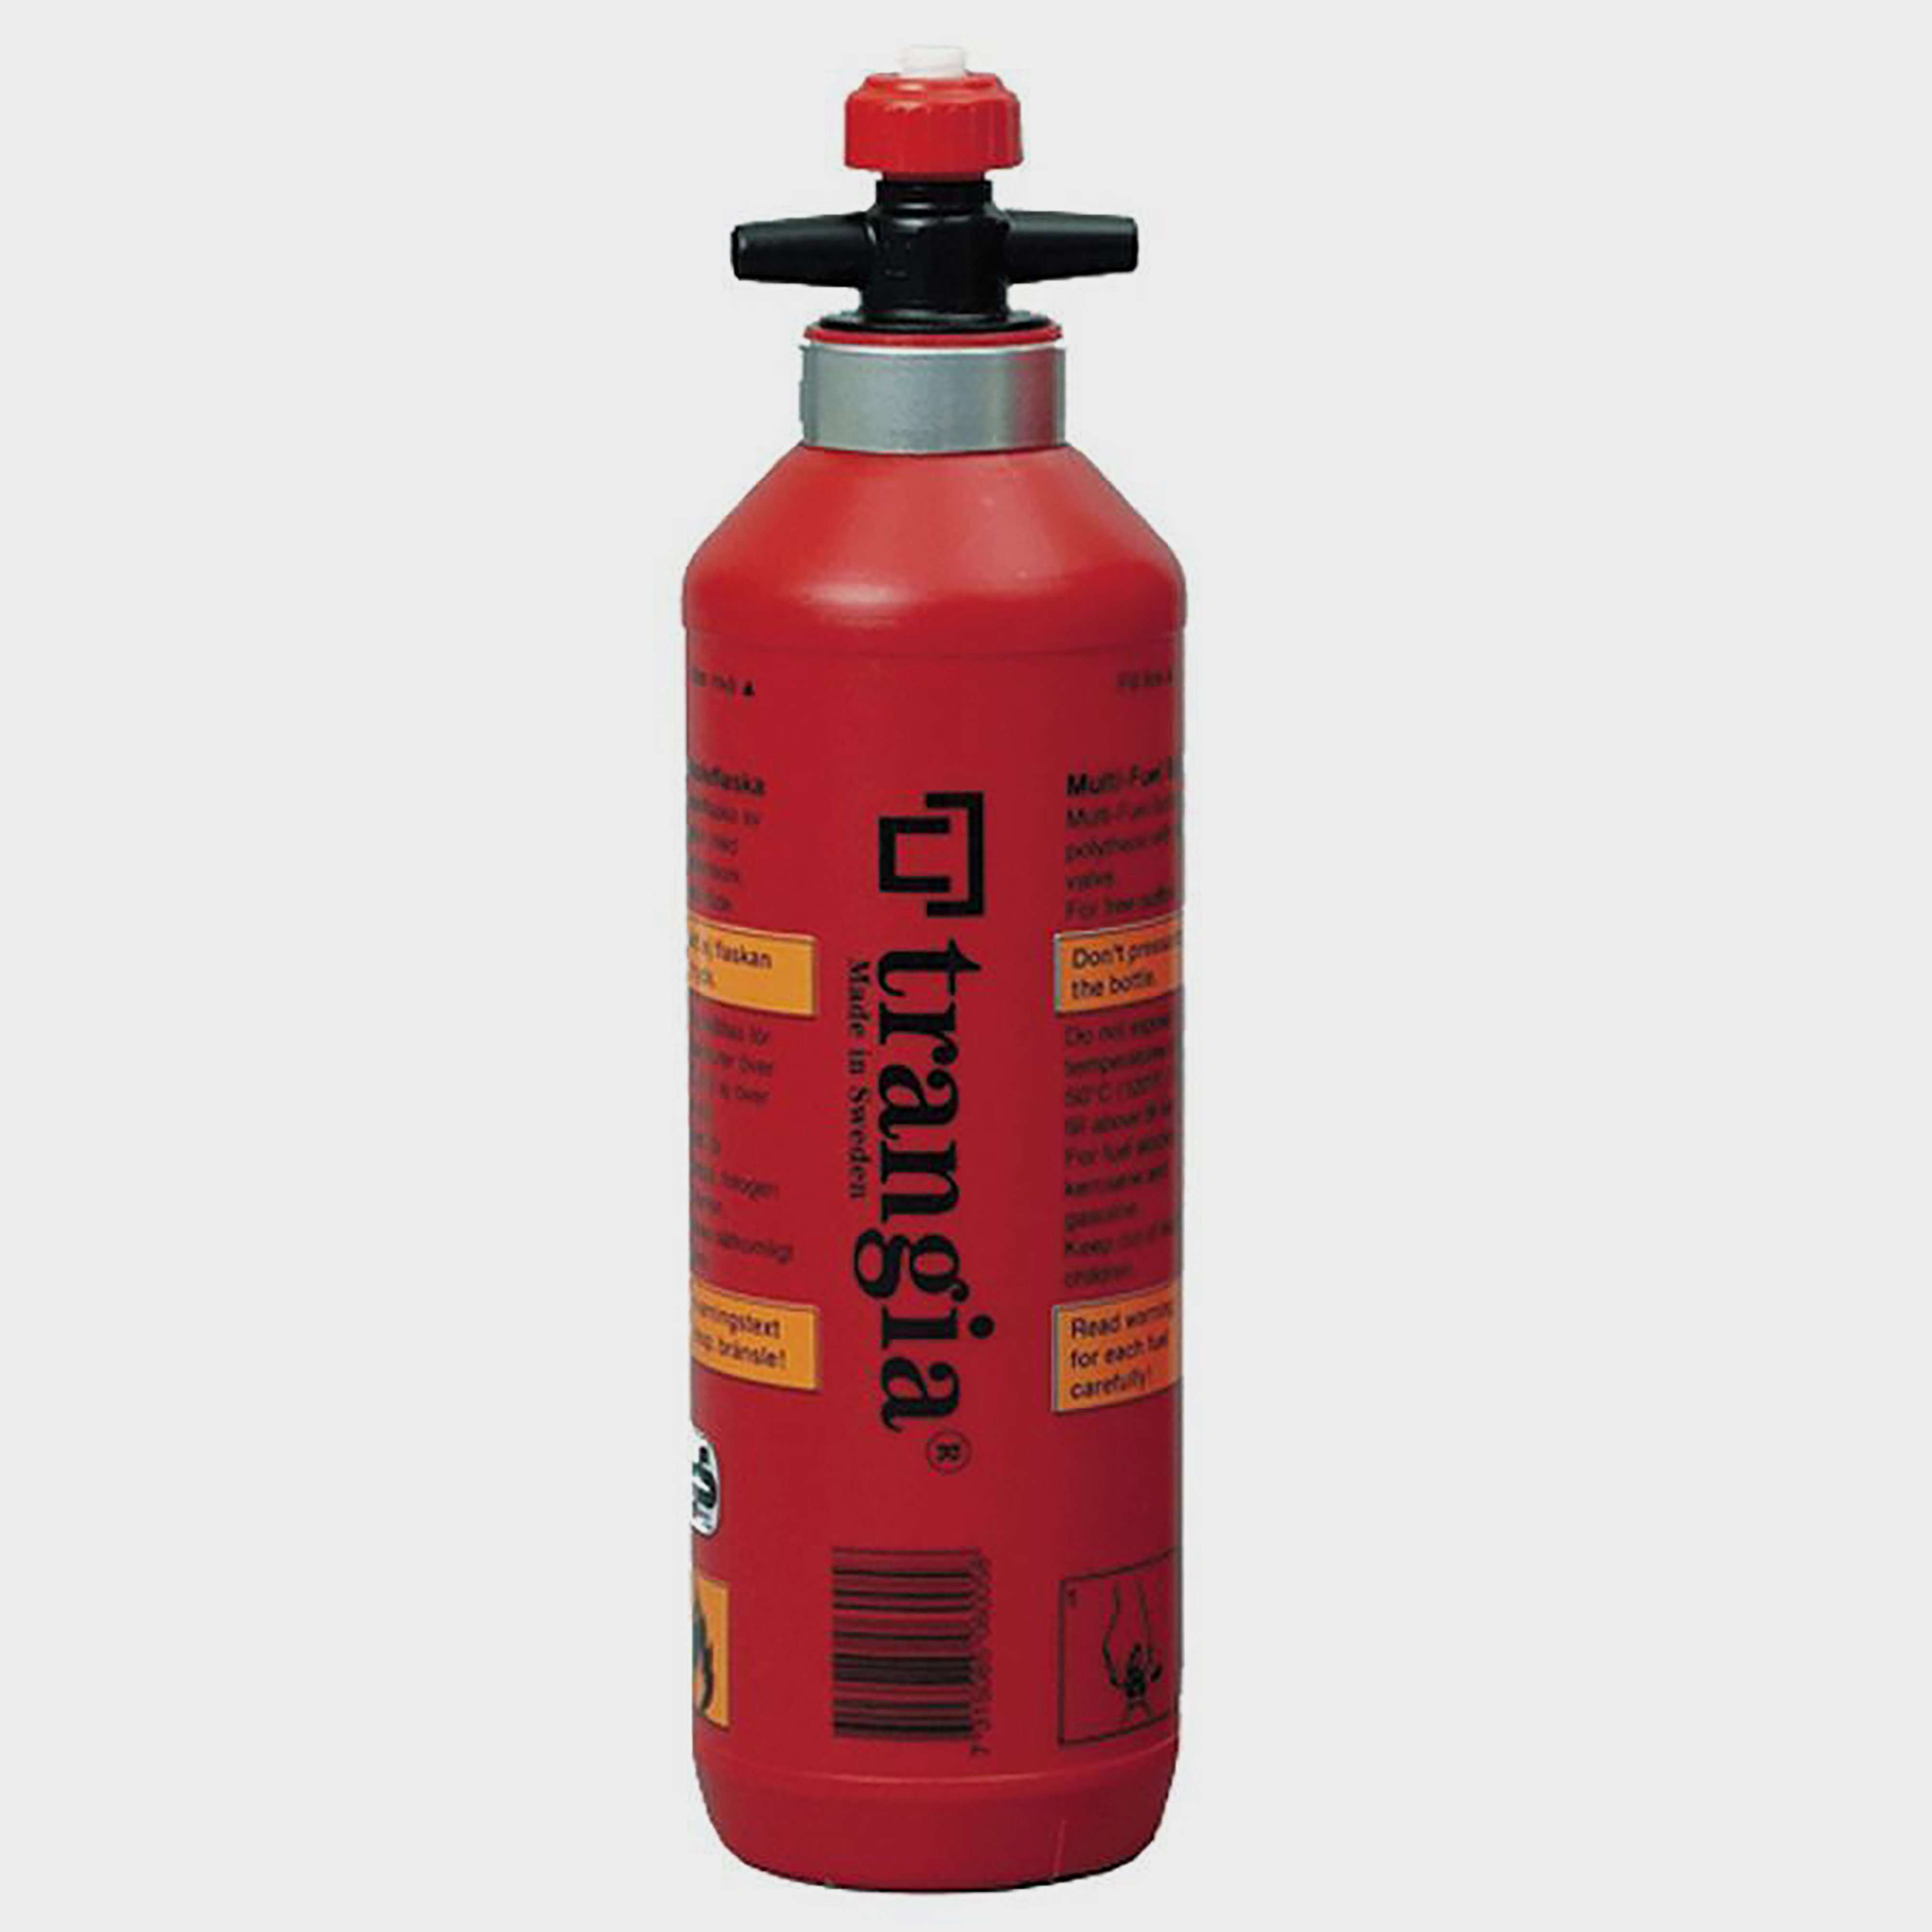 TRANGIA 1 Litre Fuel Bottle